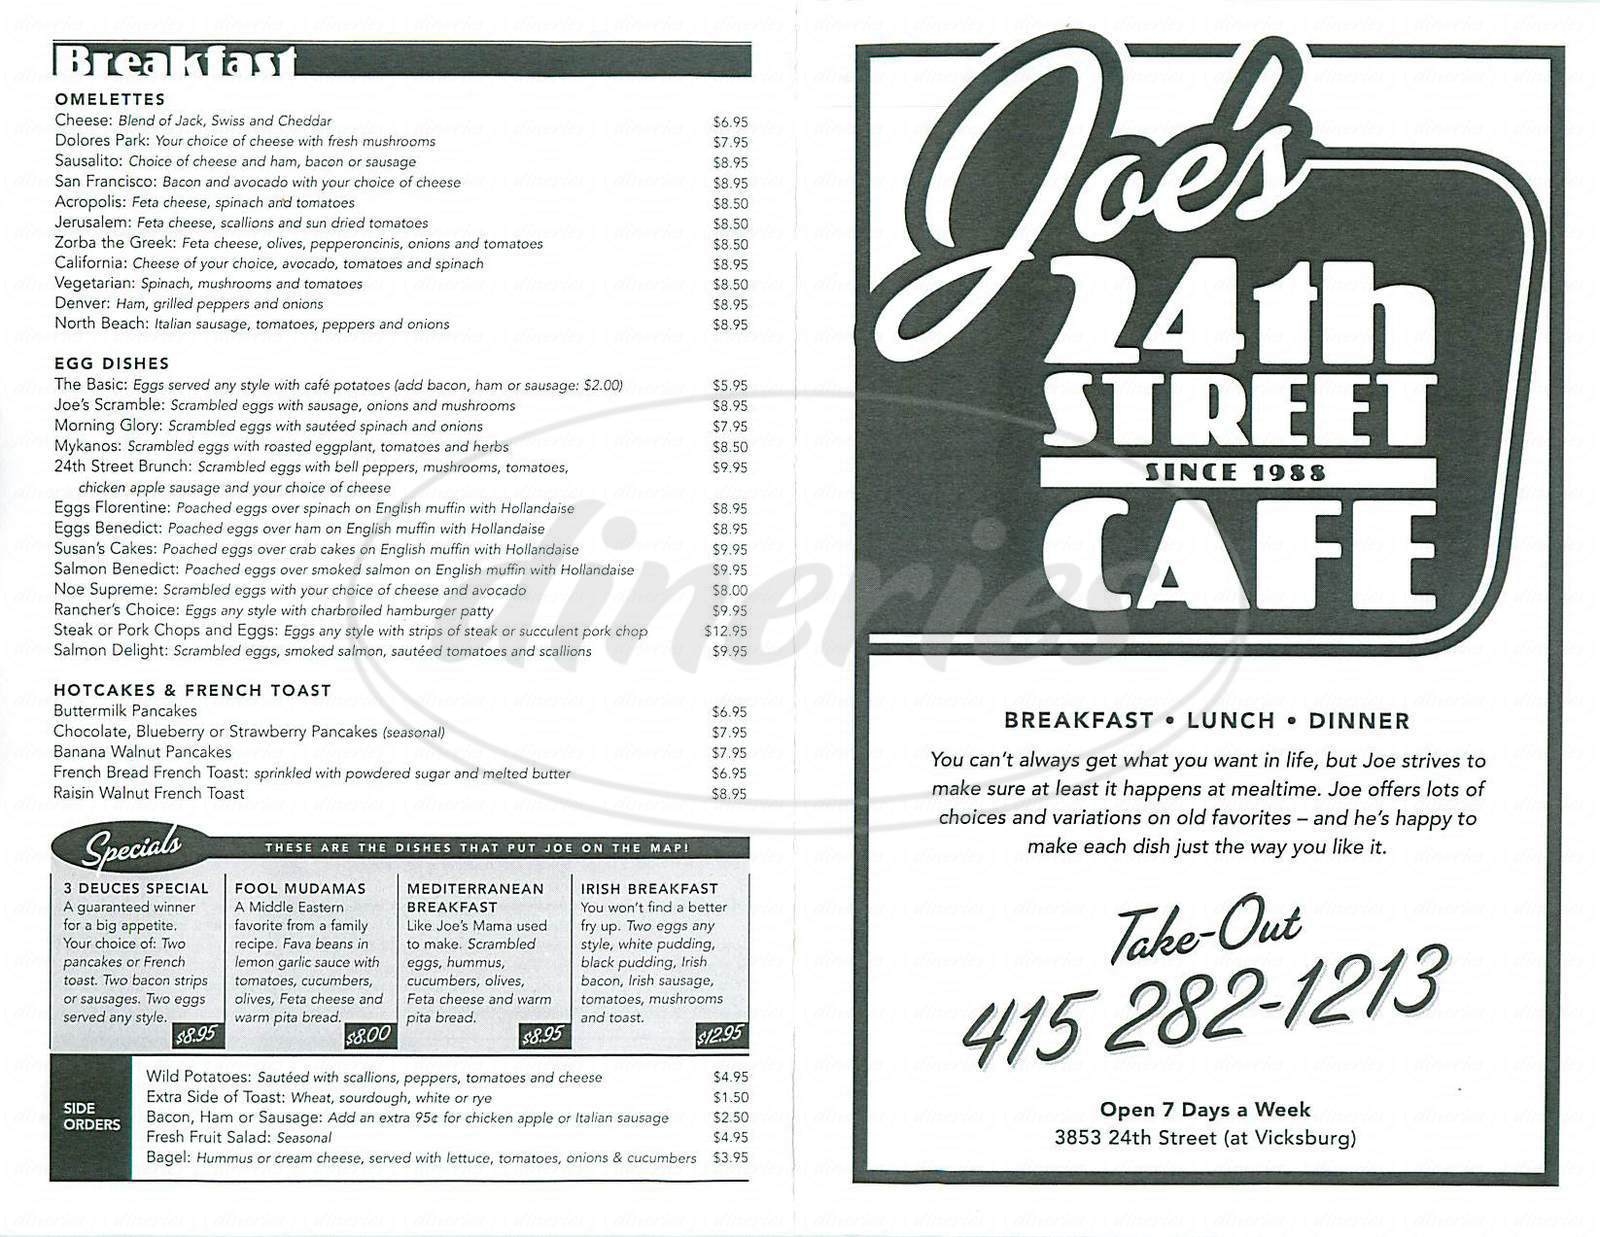 menu for Joe's 24th Street Café